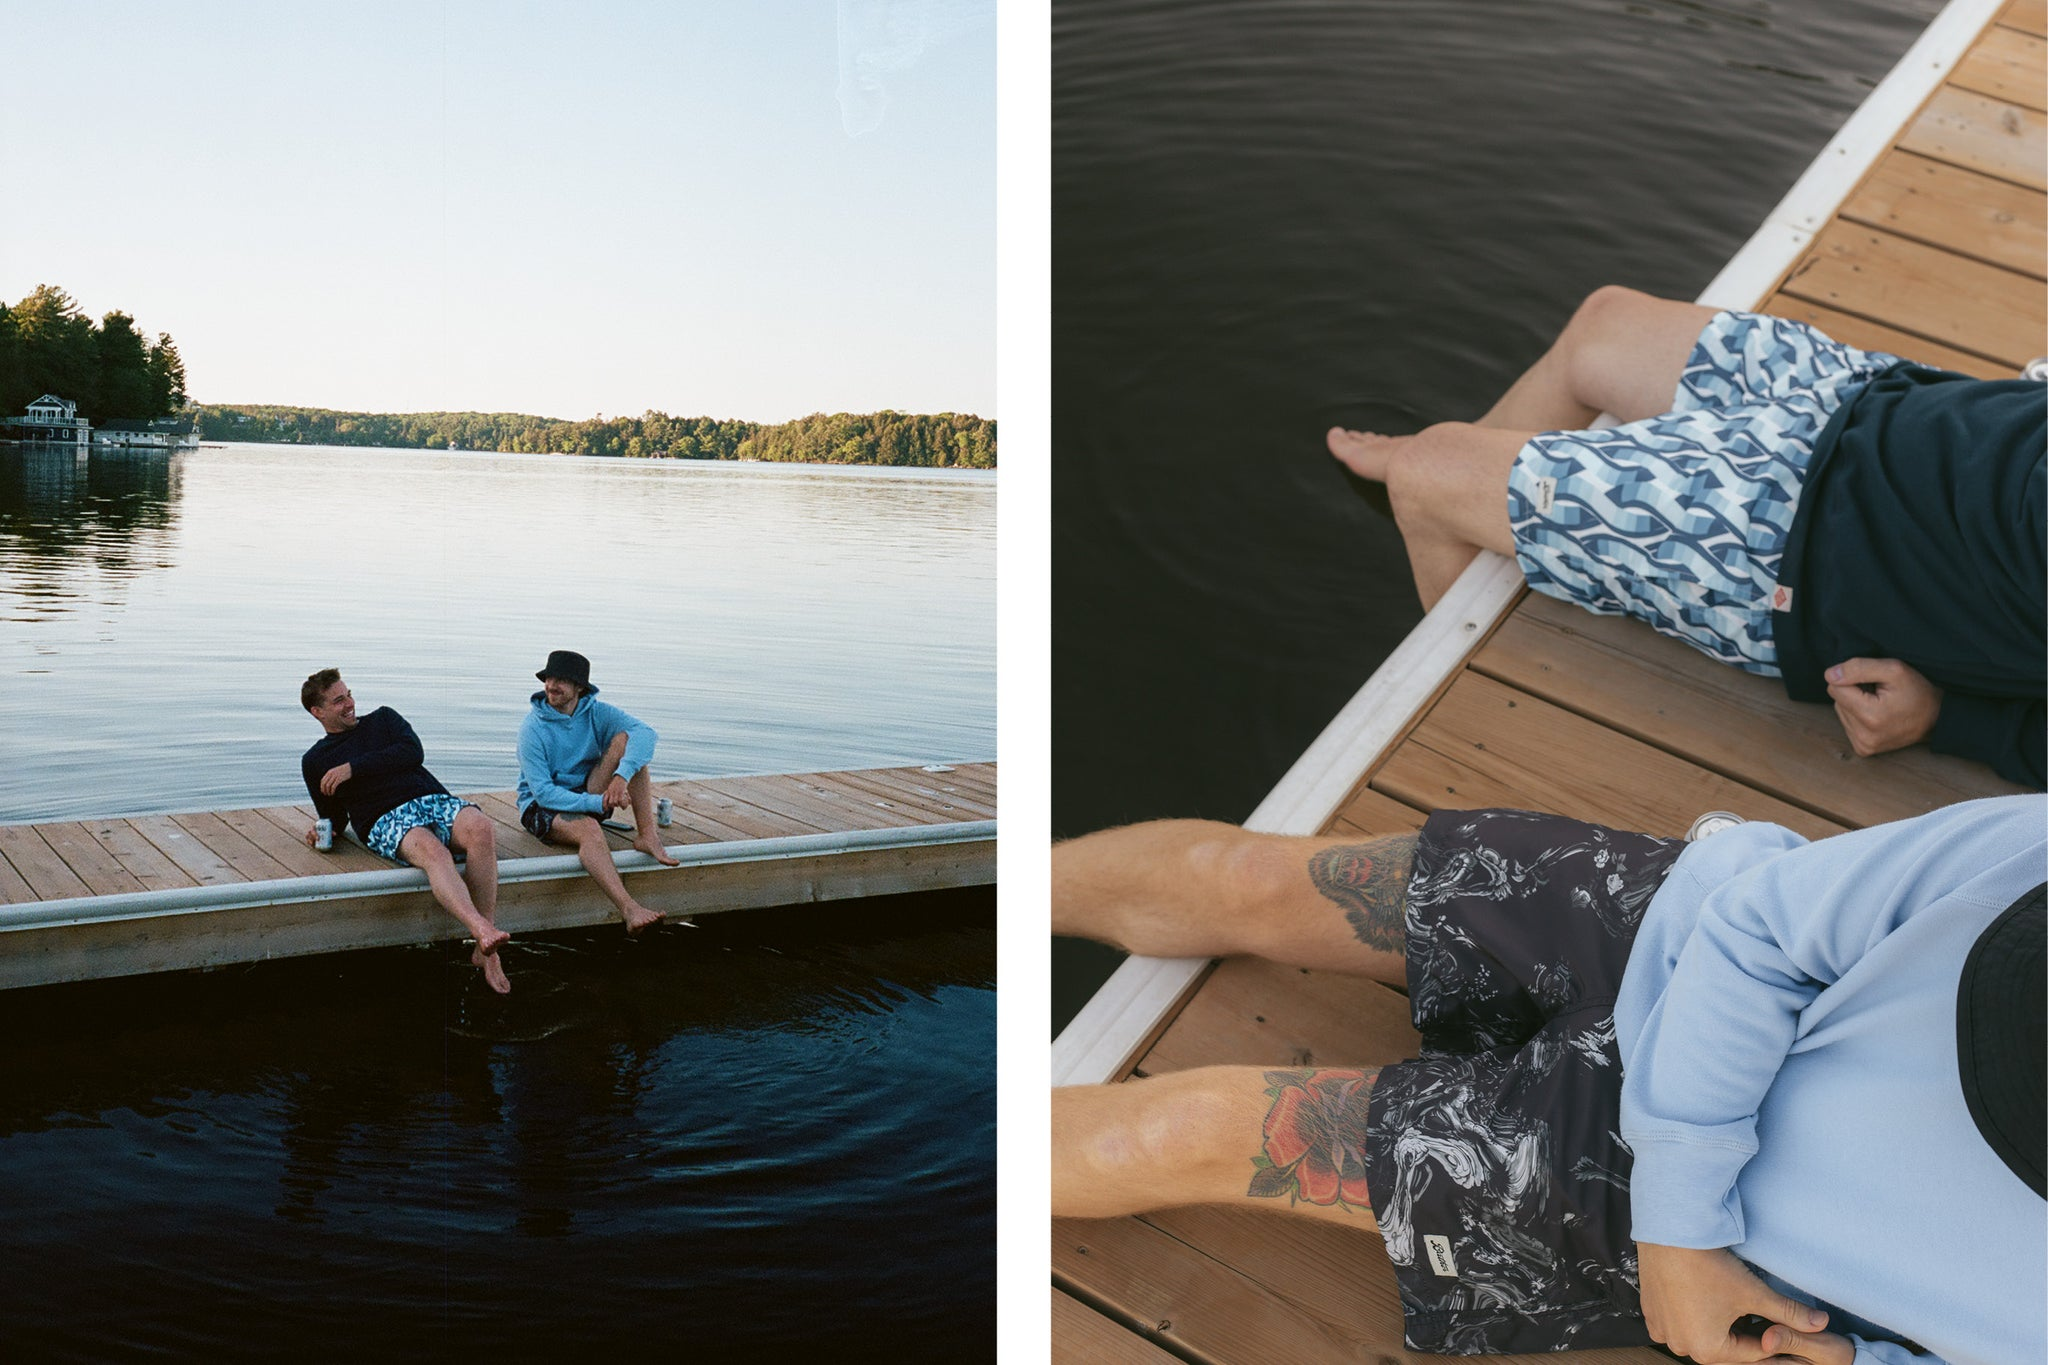 Two men sitting on a lake dock wearing hoodies and swim trunks while the sun sets